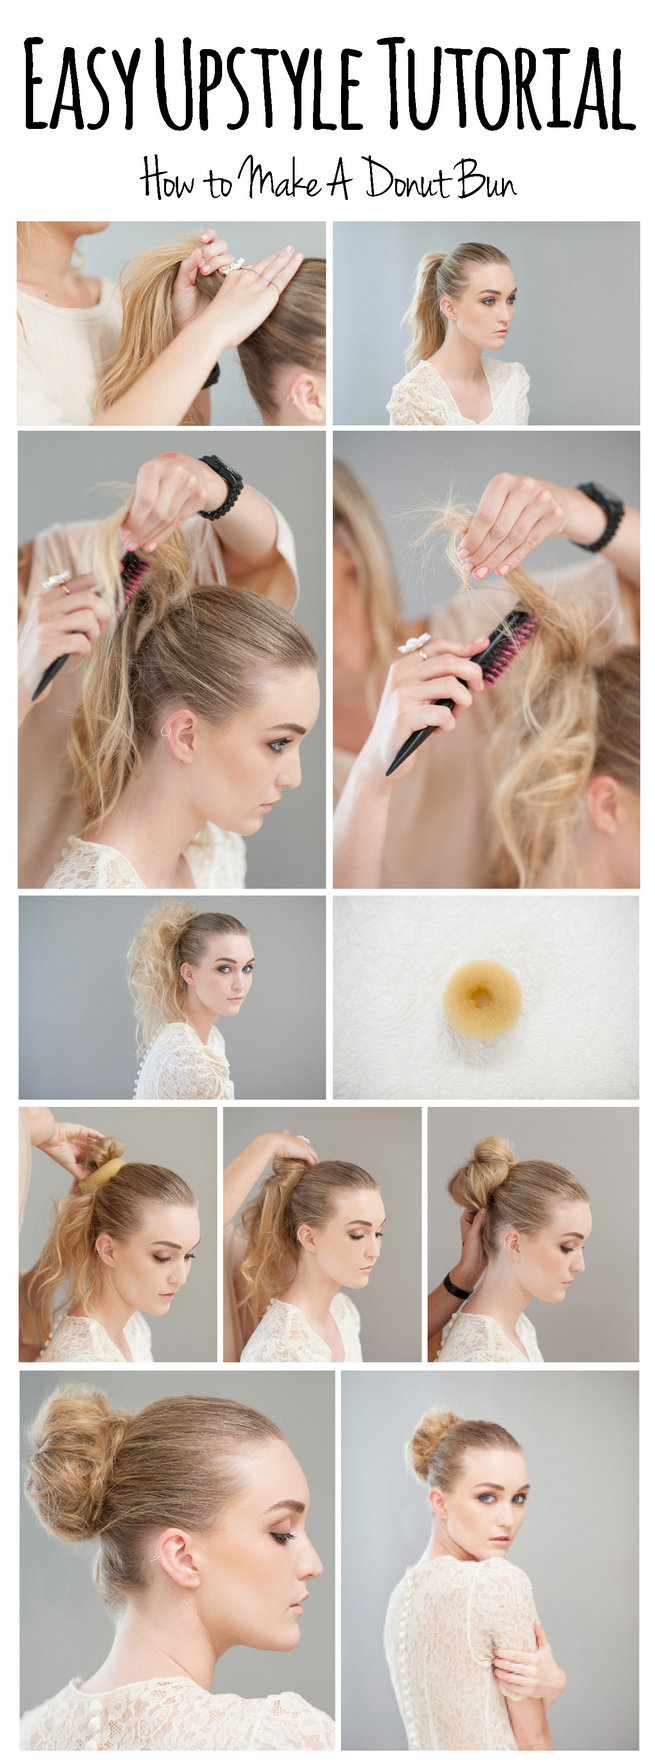 How to make a donut bun step by step. Hair & Make Up: Lisa Brown. Photography: Samantha du Toit